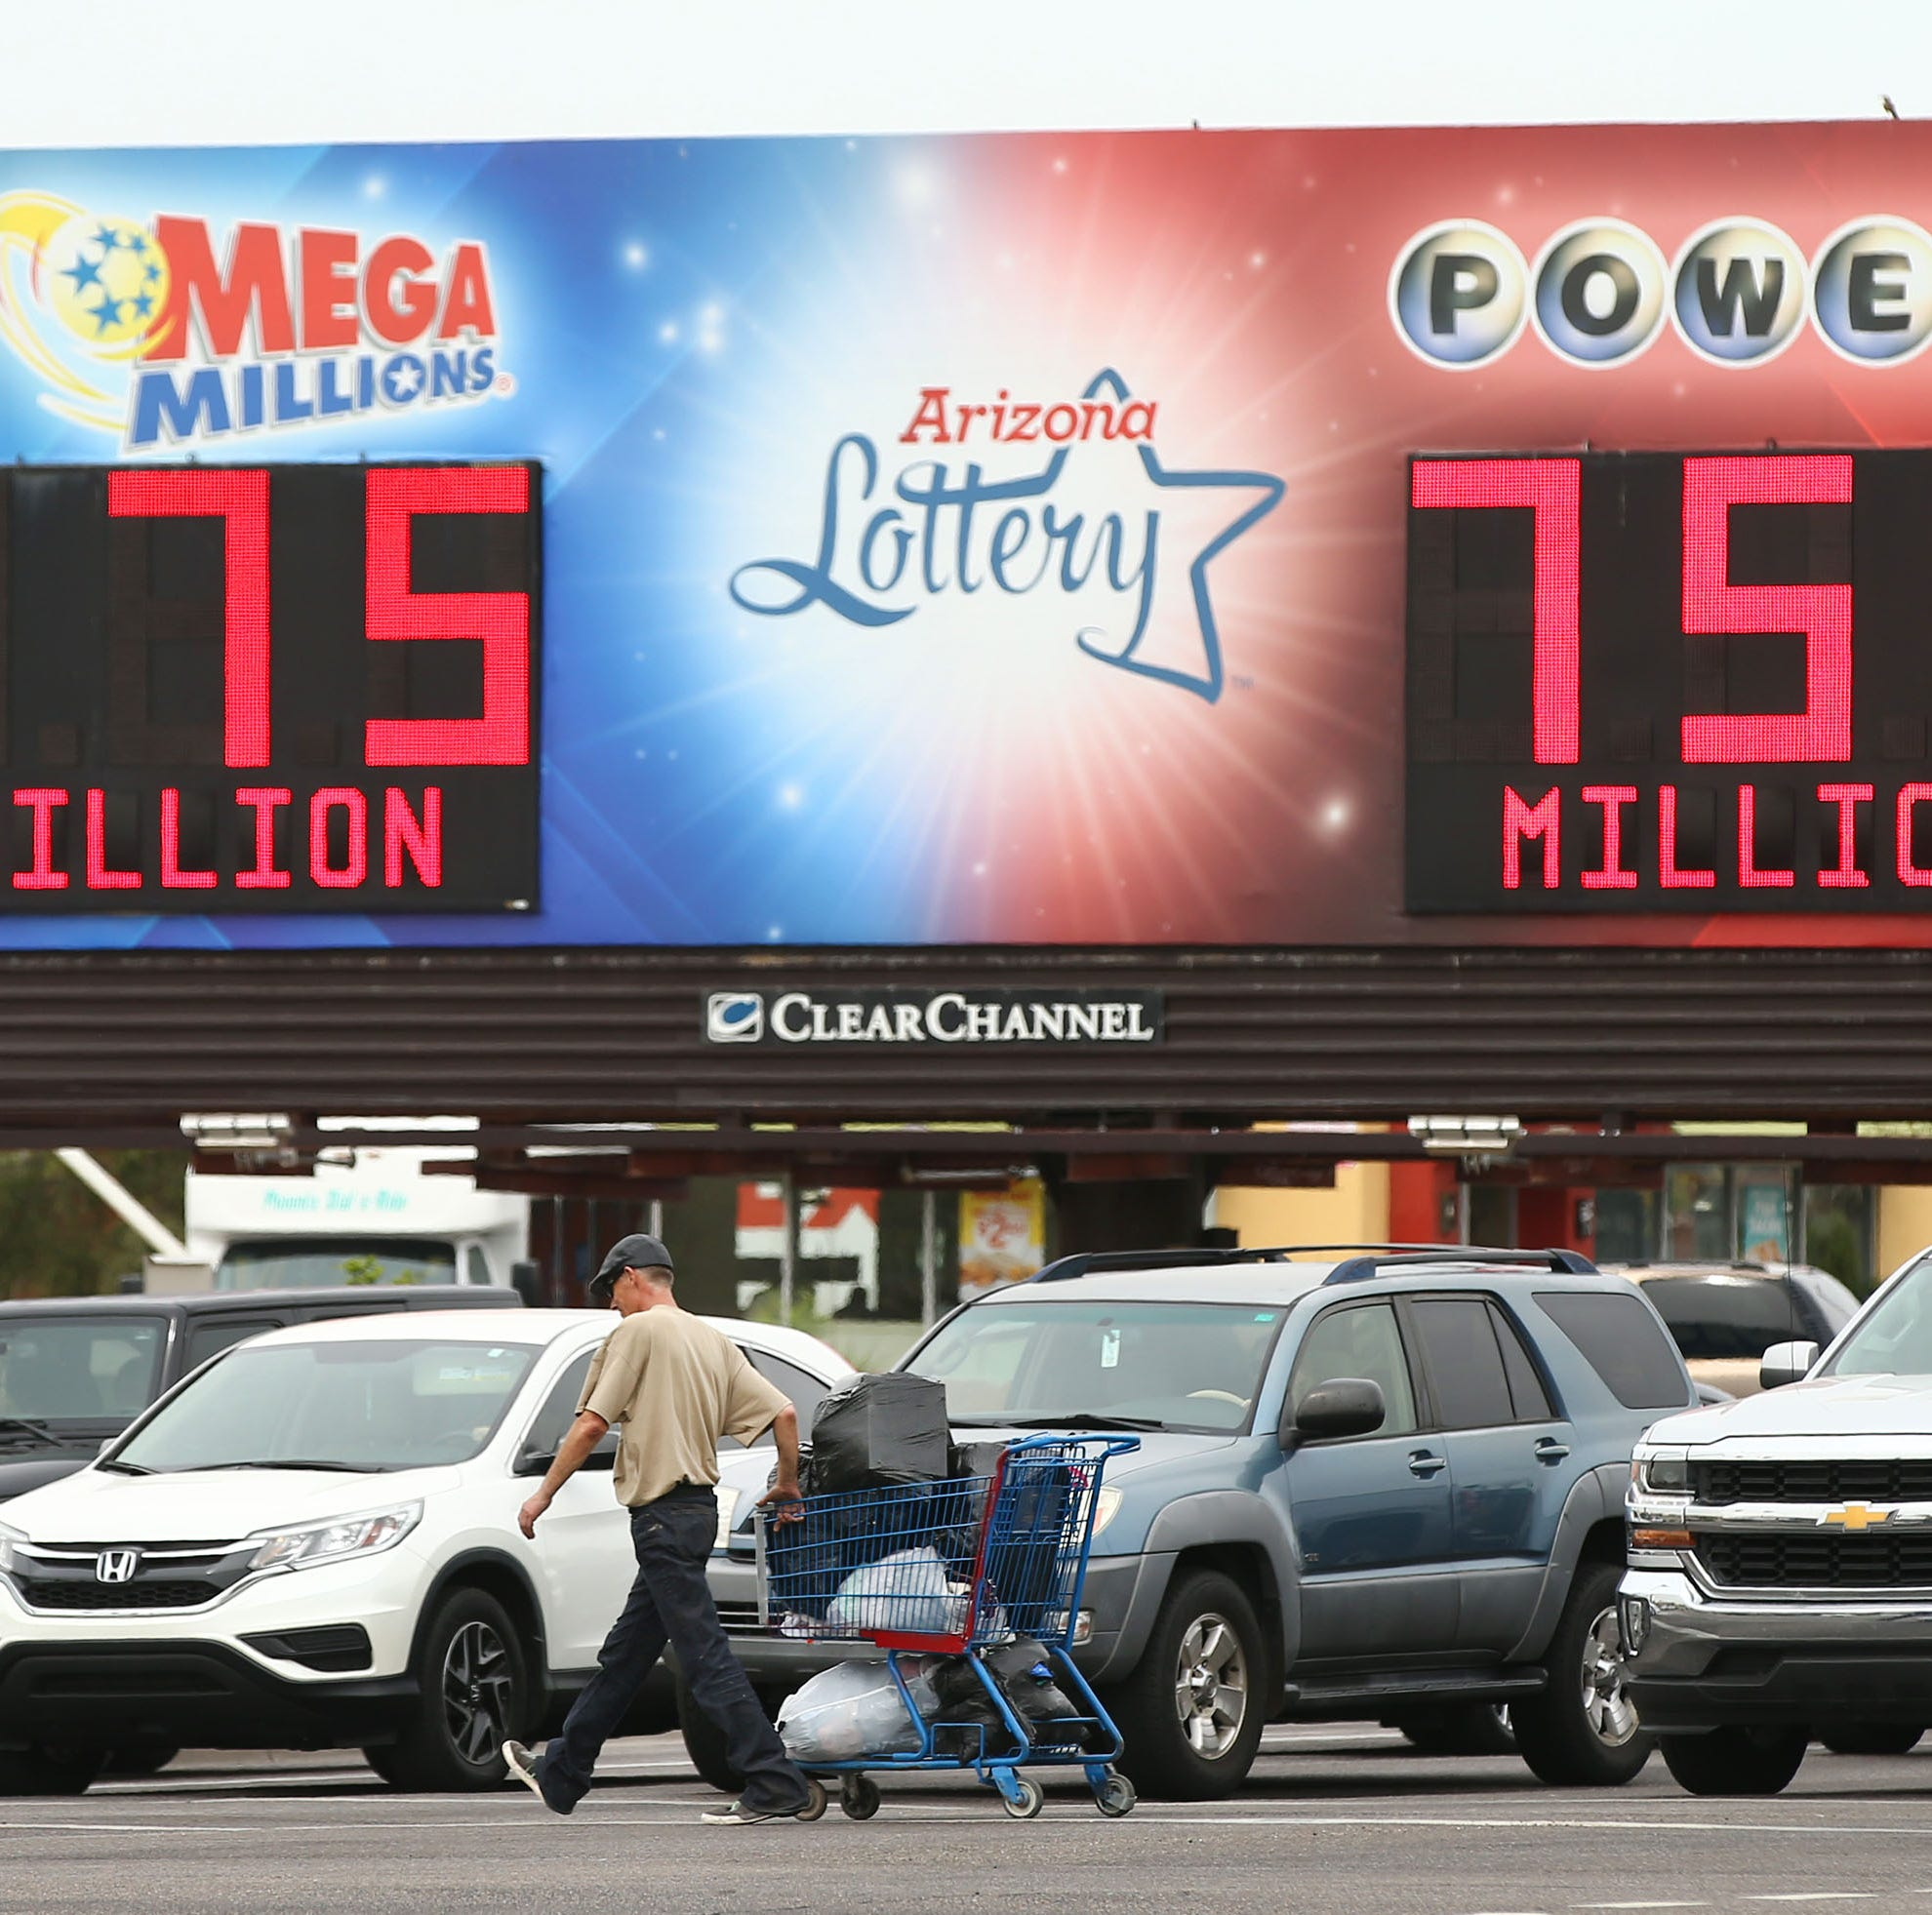 12 things you should do if you win the $750 million Powerball jackpot